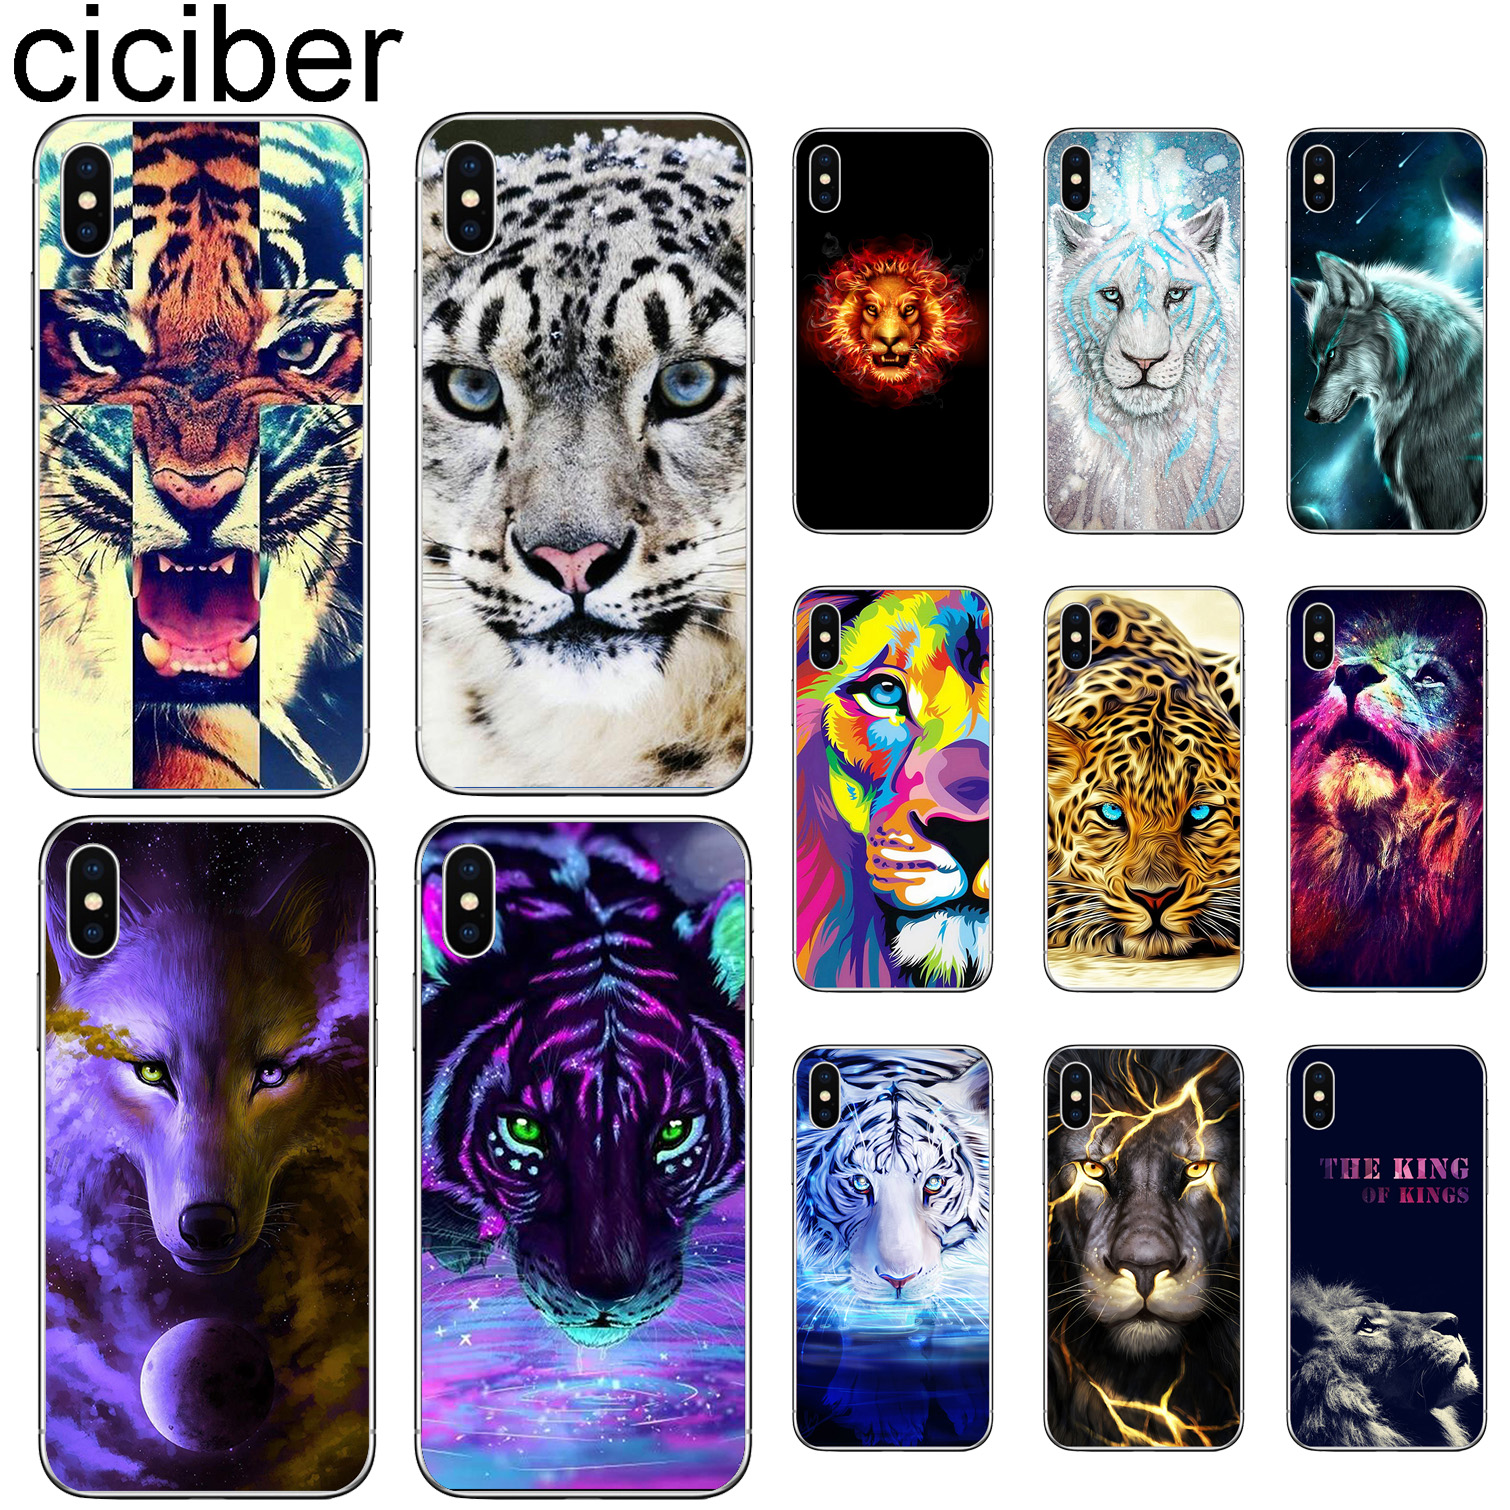 ciciber Phone <font><b>Cases</b></font> For <font><b>Iphone</b></font> 11 Pro <font><b>Case</b></font> Cover For <font><b>iPhone</b></font> XR 11 Pro 7 X XS MAX 8 6 <font><b>6S</b></font> Plus 5S SE Silicone Animal <font><b>Lion</b></font> Tiger image